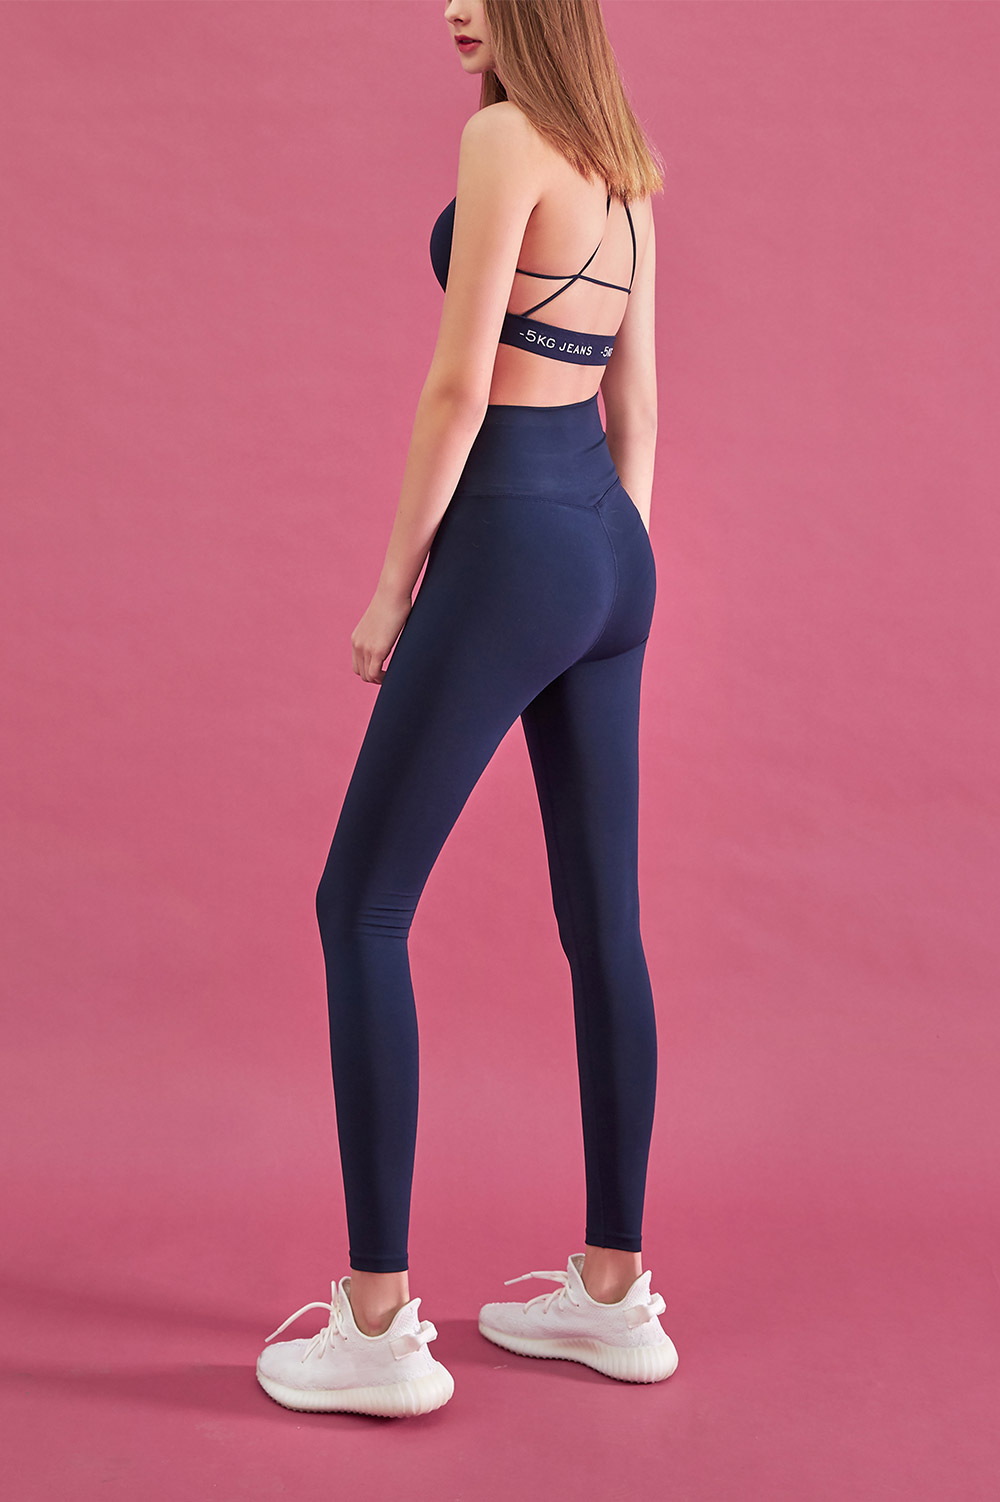 //cdn.nhanh.vn/cdn/store/29770/psCT/20190108/11027736/_5Kg_Perfect_Line_Leggings_Plus_(2019_22_50).jpg